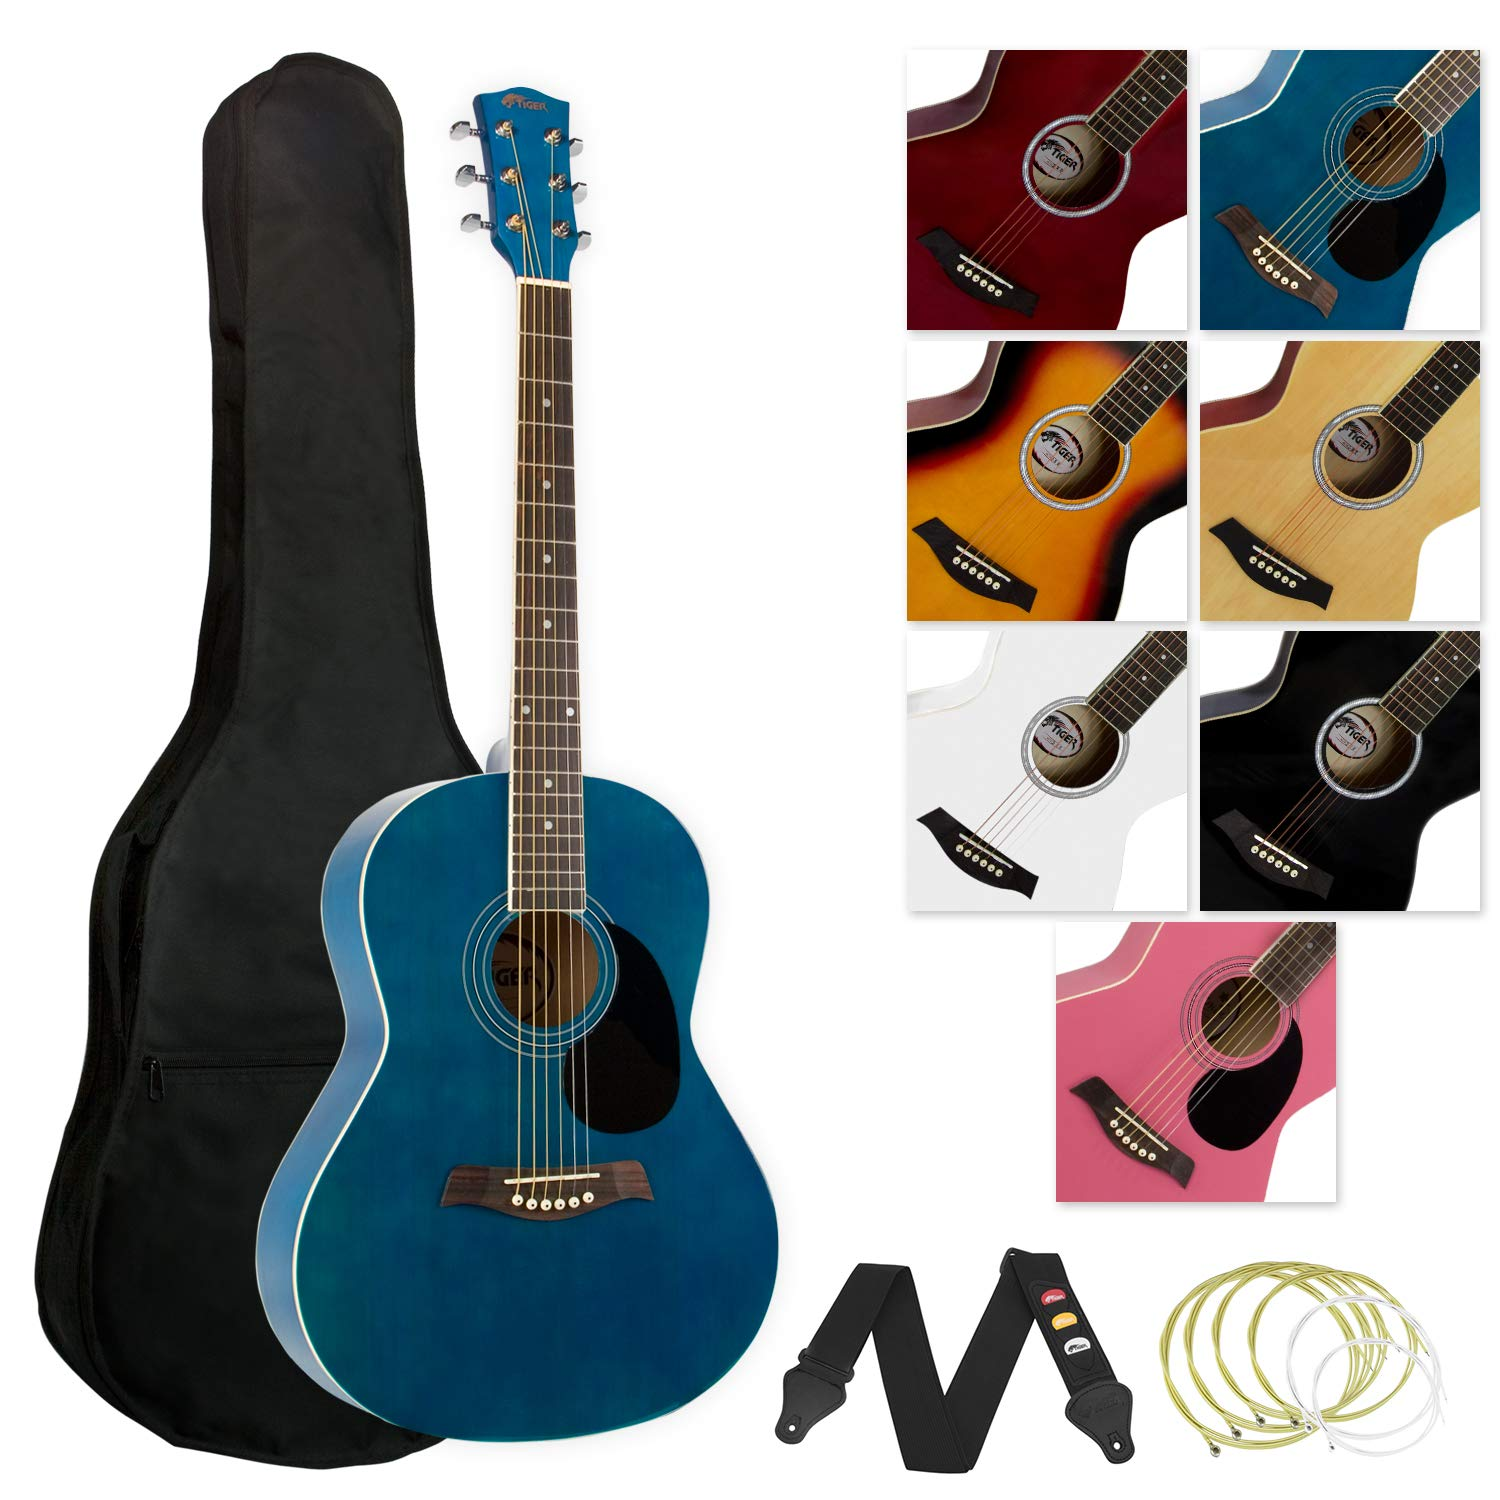 Tiger ACG2-BL Akustikgitarre Set - Blau Tiger Music